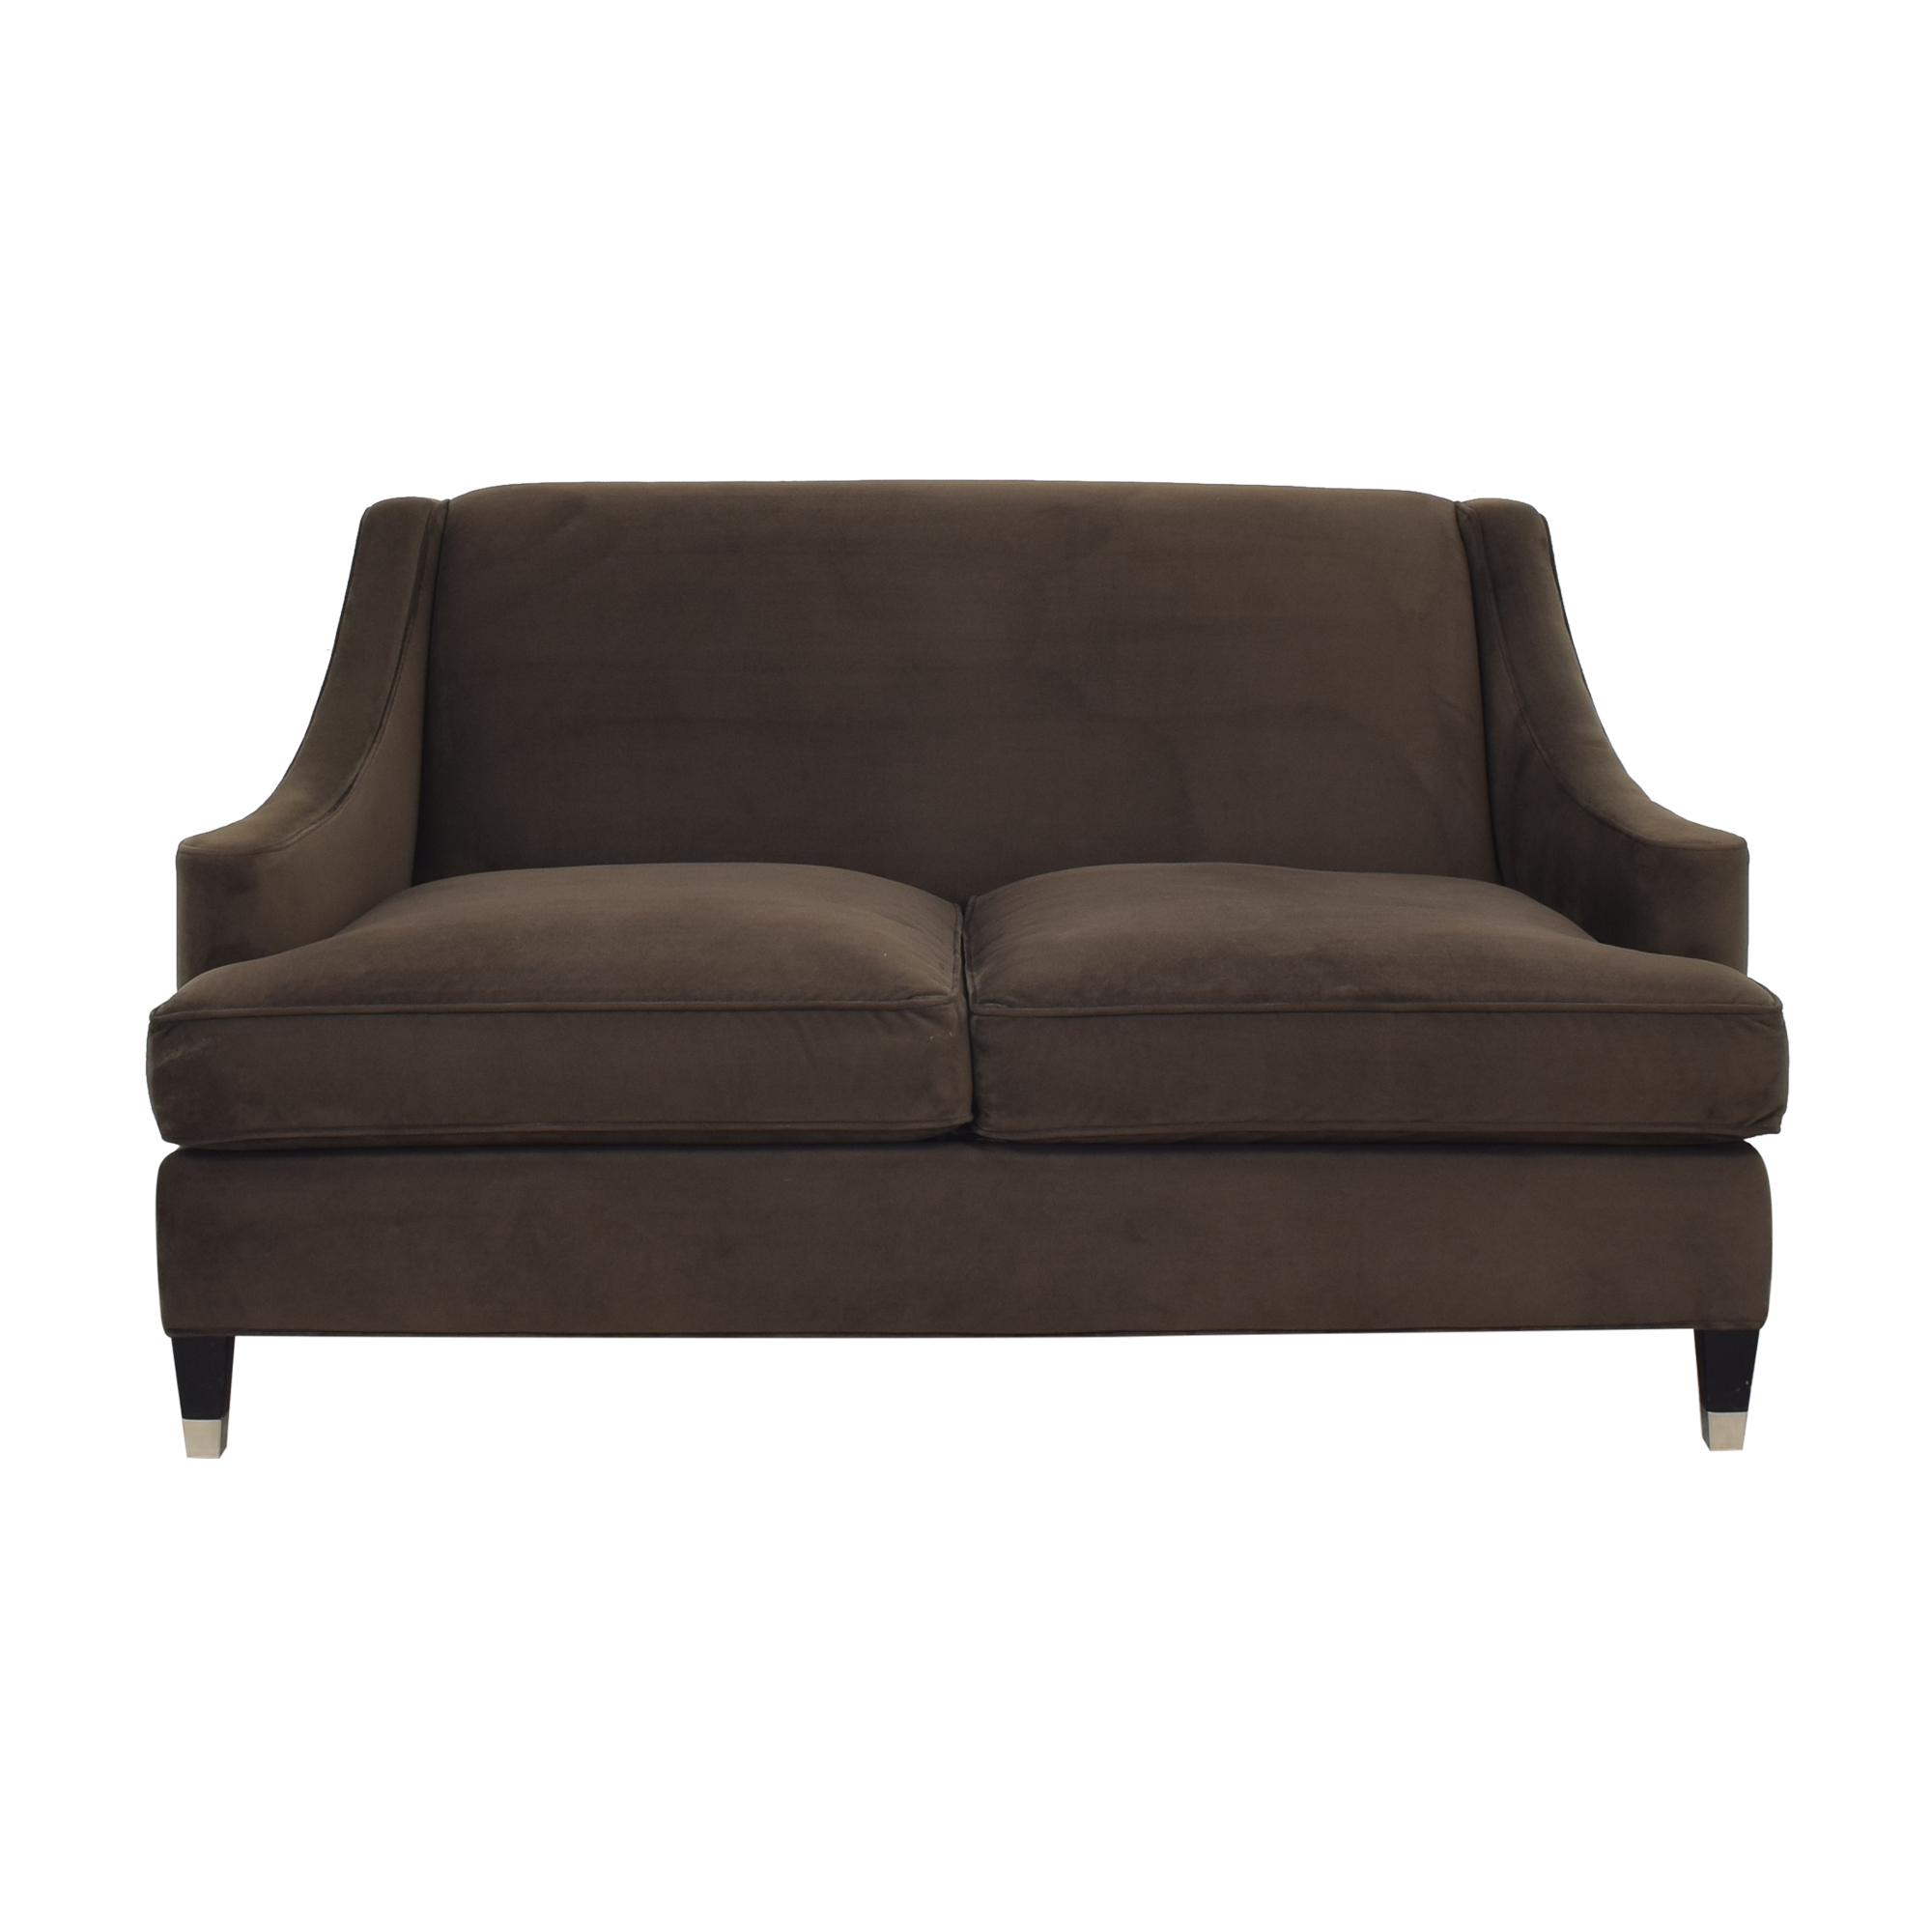 buy Room & Board Loring Walnut Loveseat Room & Board Loveseats